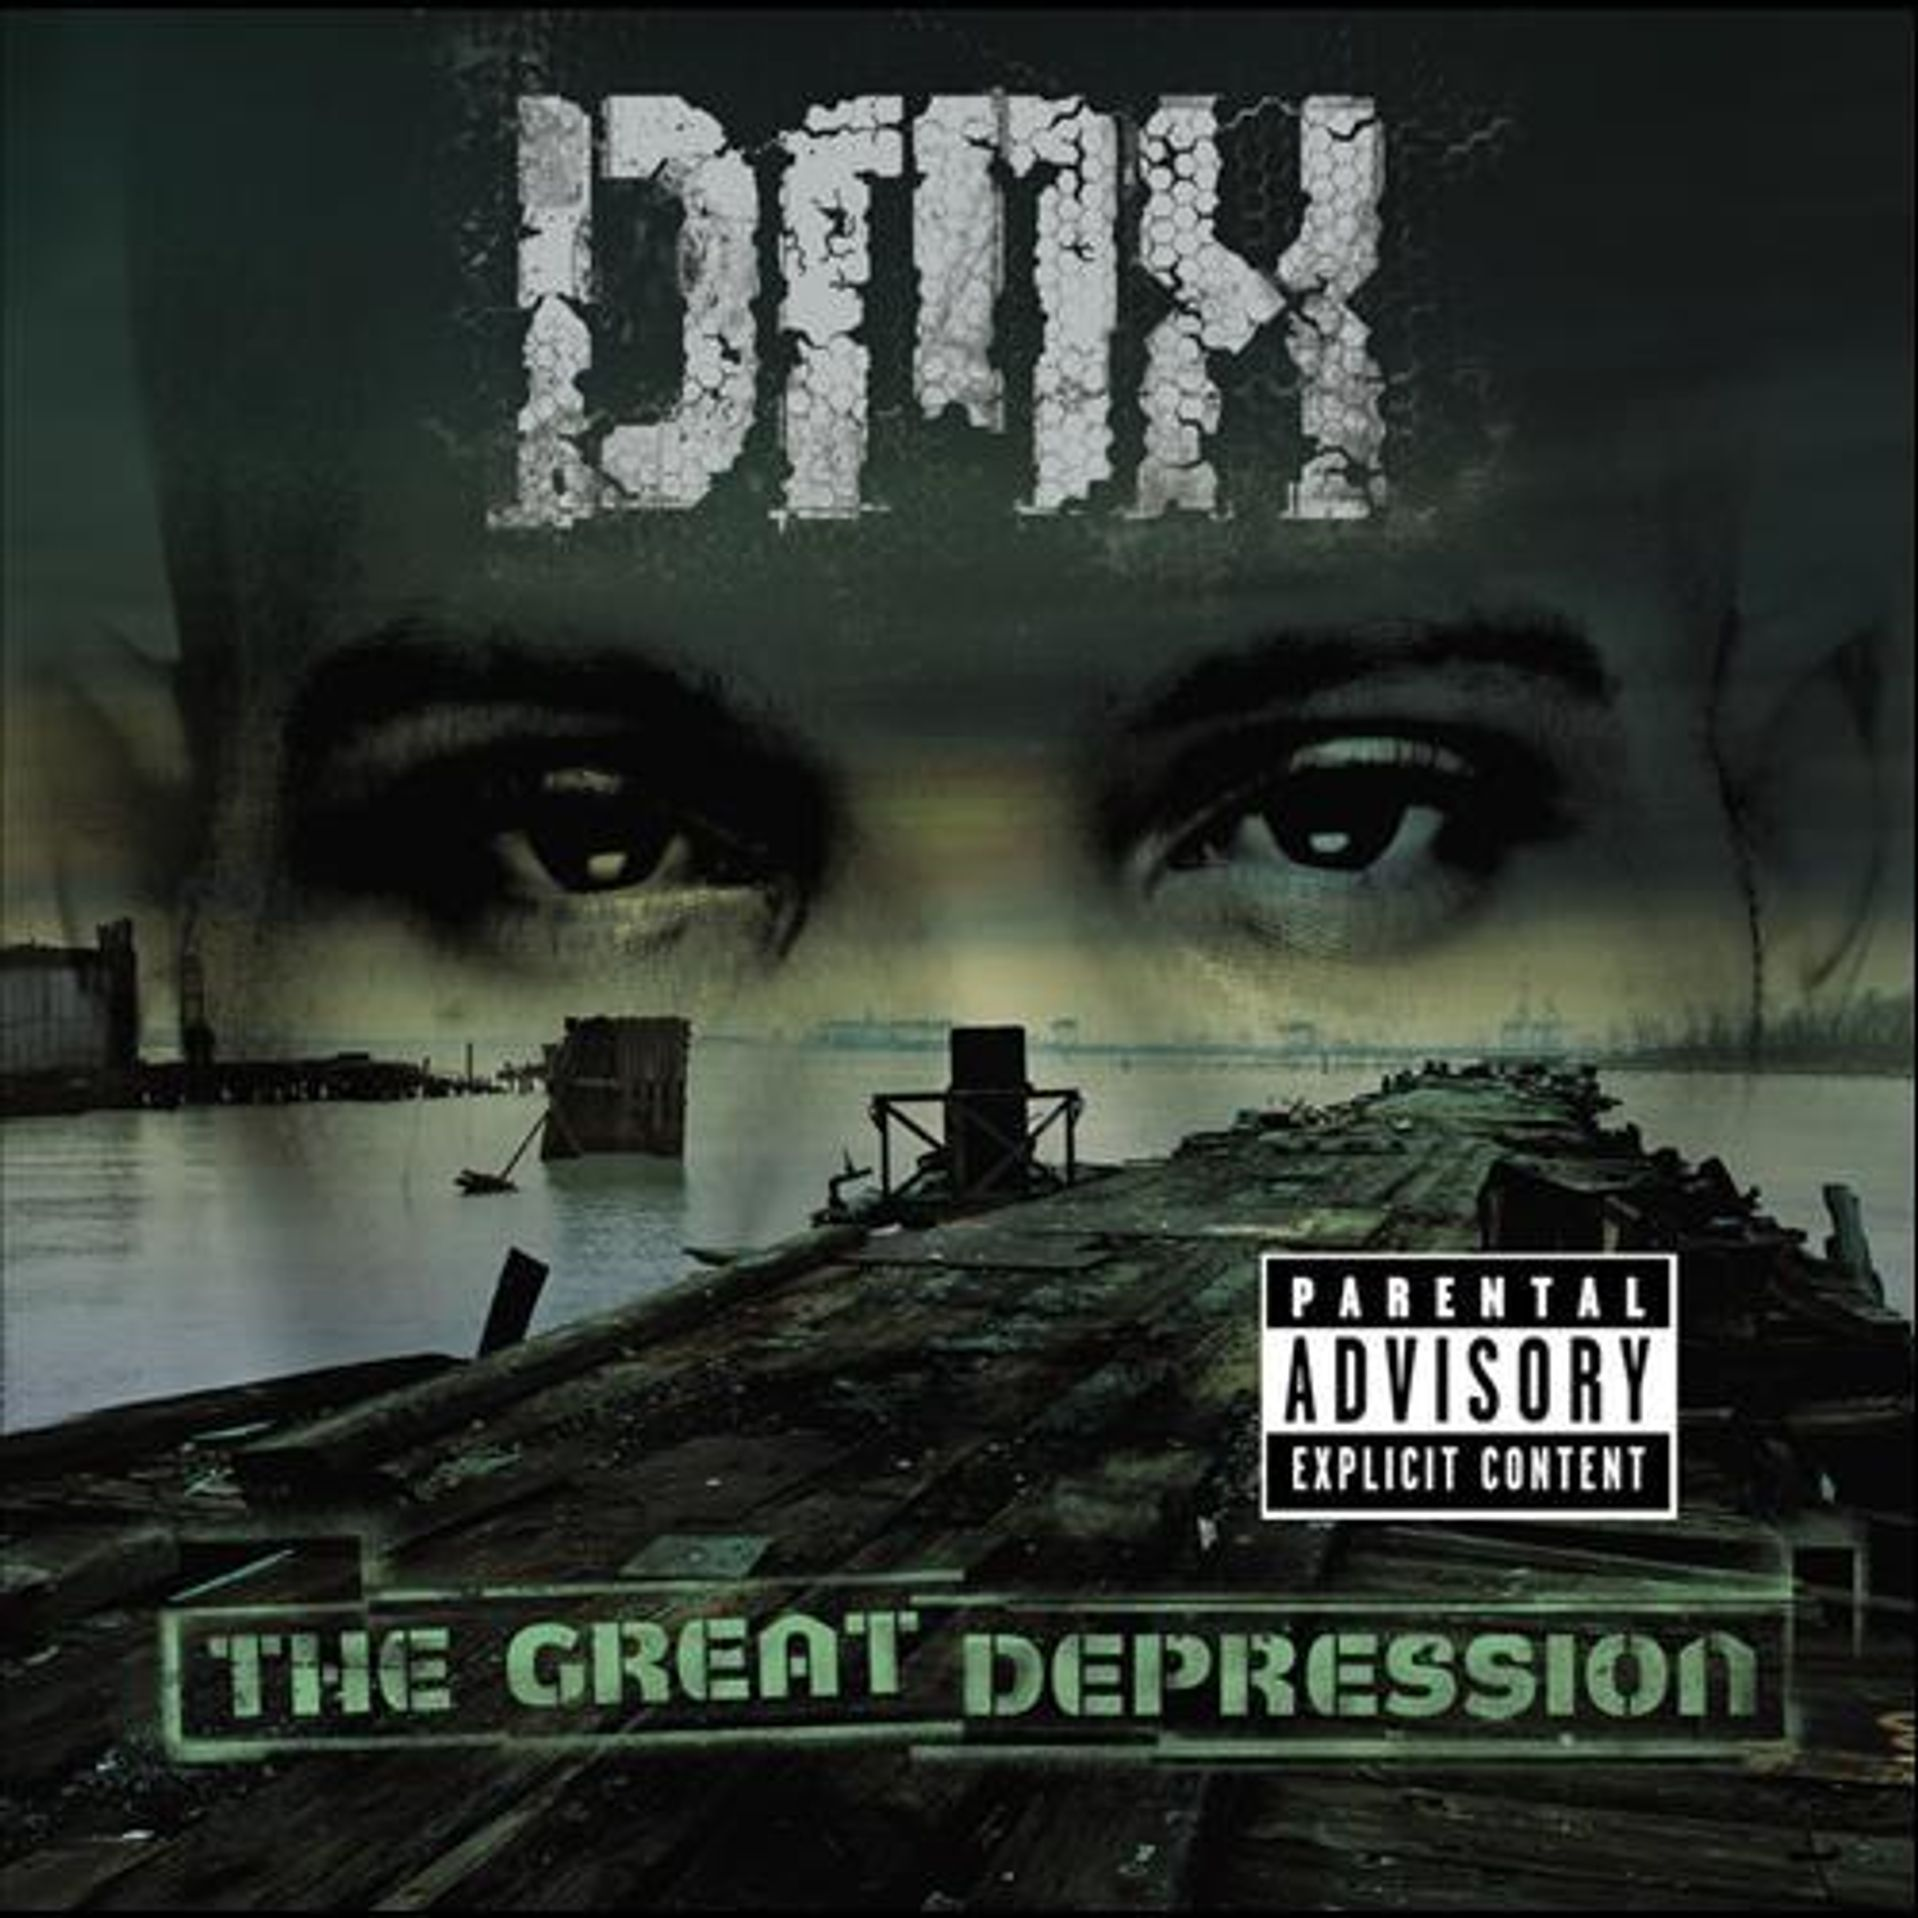 Album Title: The Great Depression by: DMX